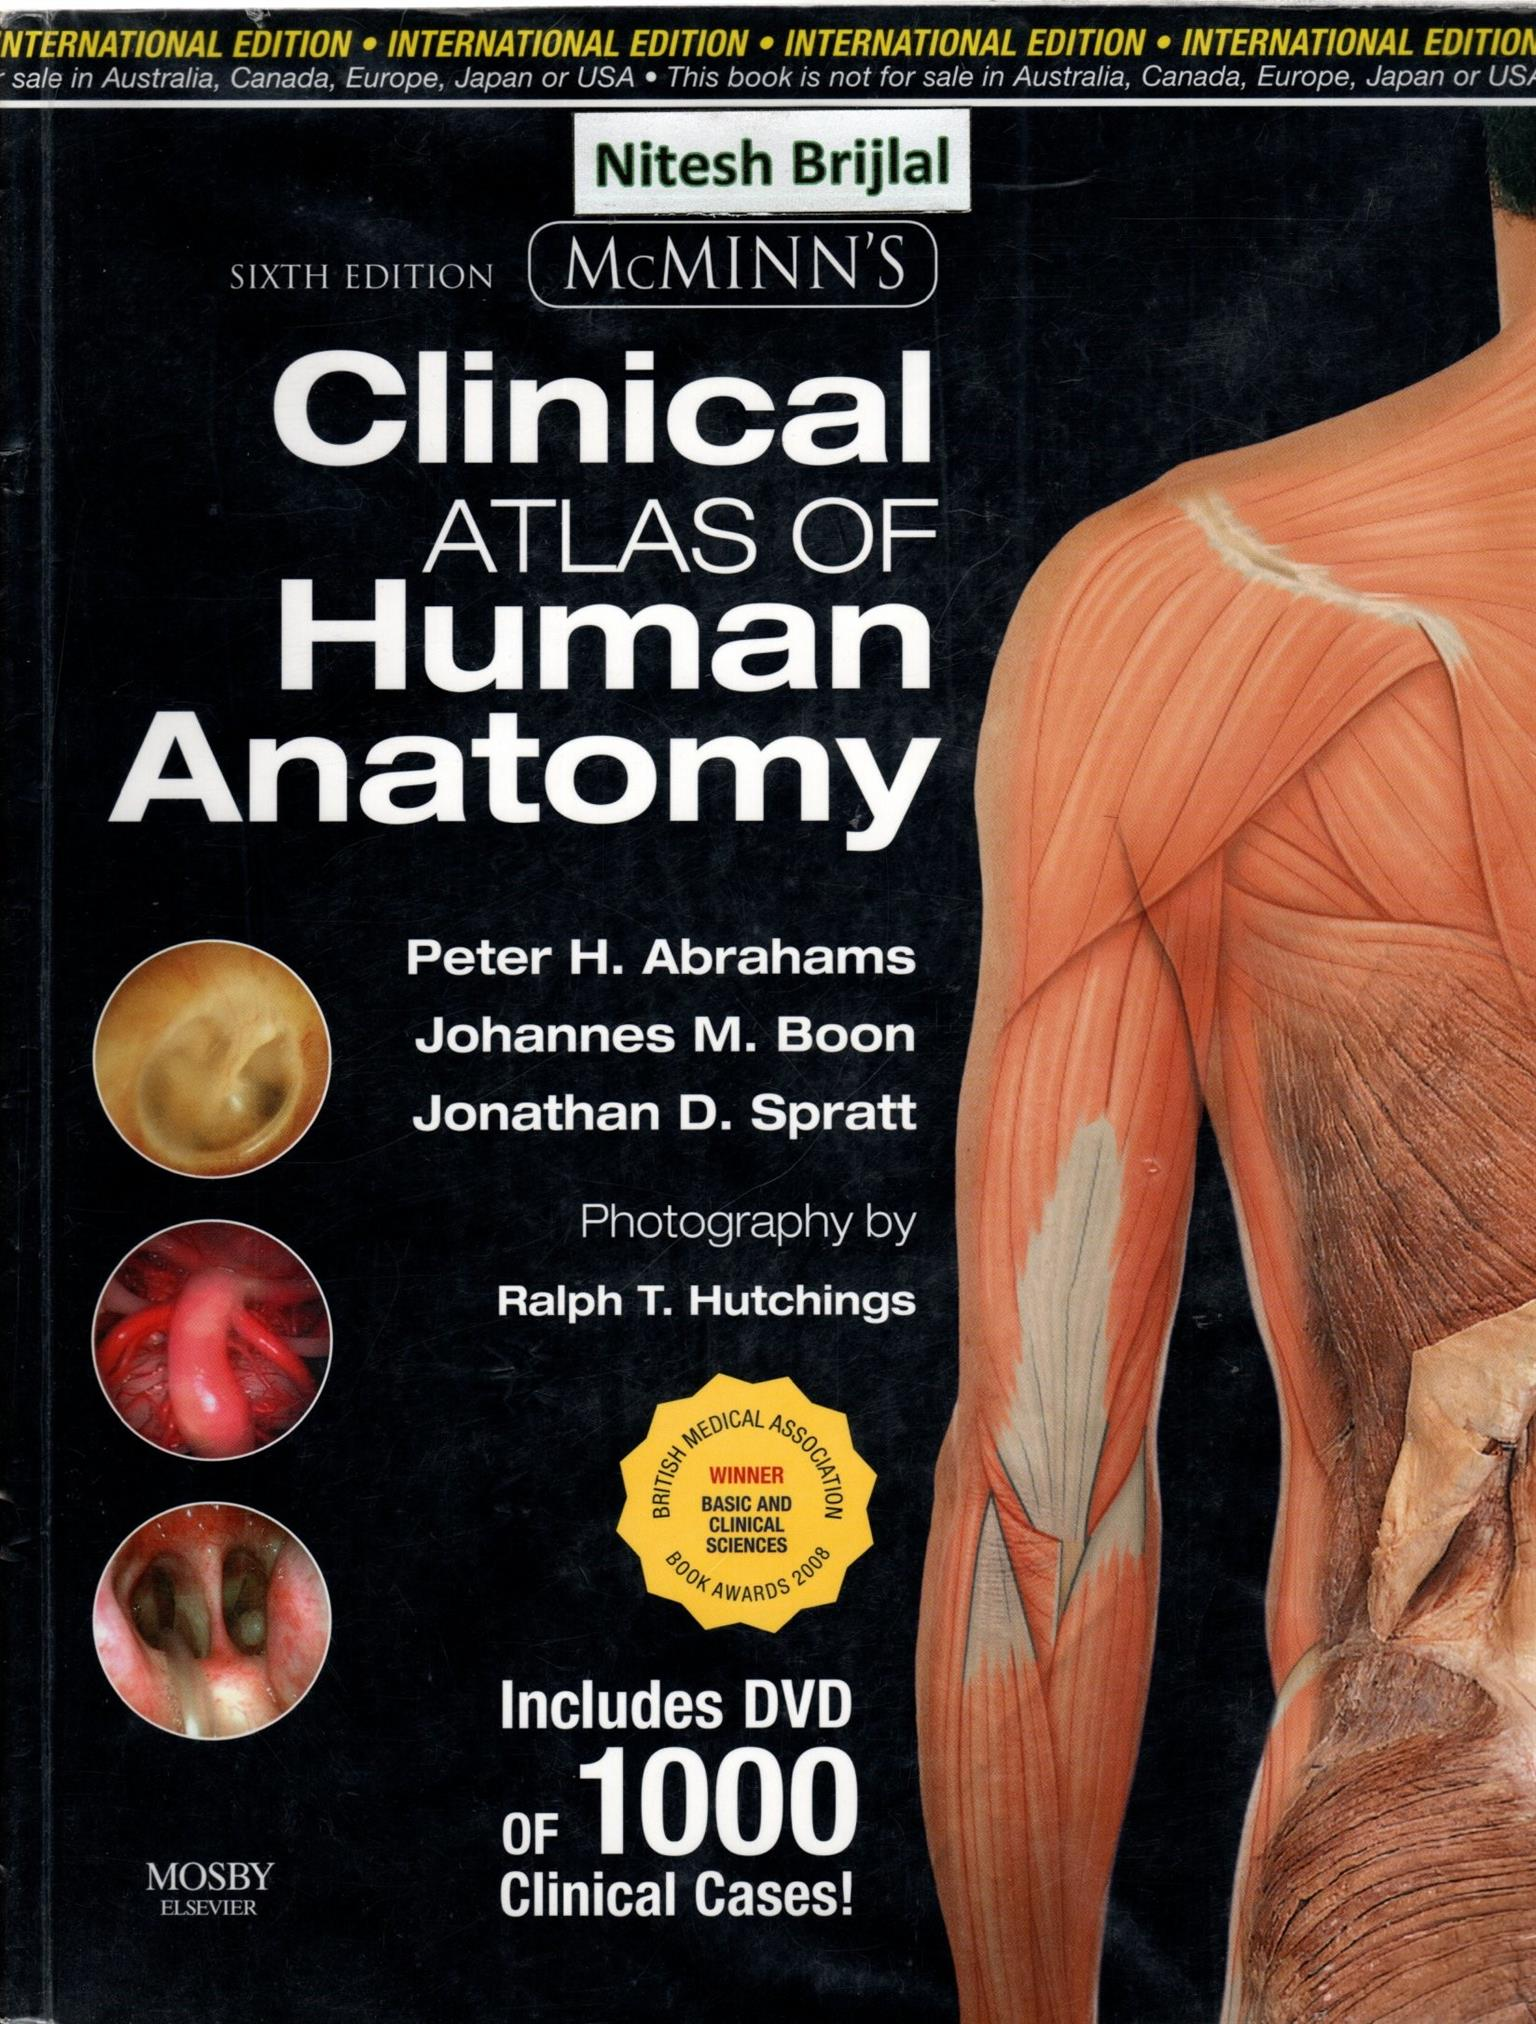 MEDICAL/HEALTH SCIENCE TEXTBOOKS FOR SALE (ADVERT 2 OF 3) - CHECK MY PROFILE FOR MORE ADS - FROM R89